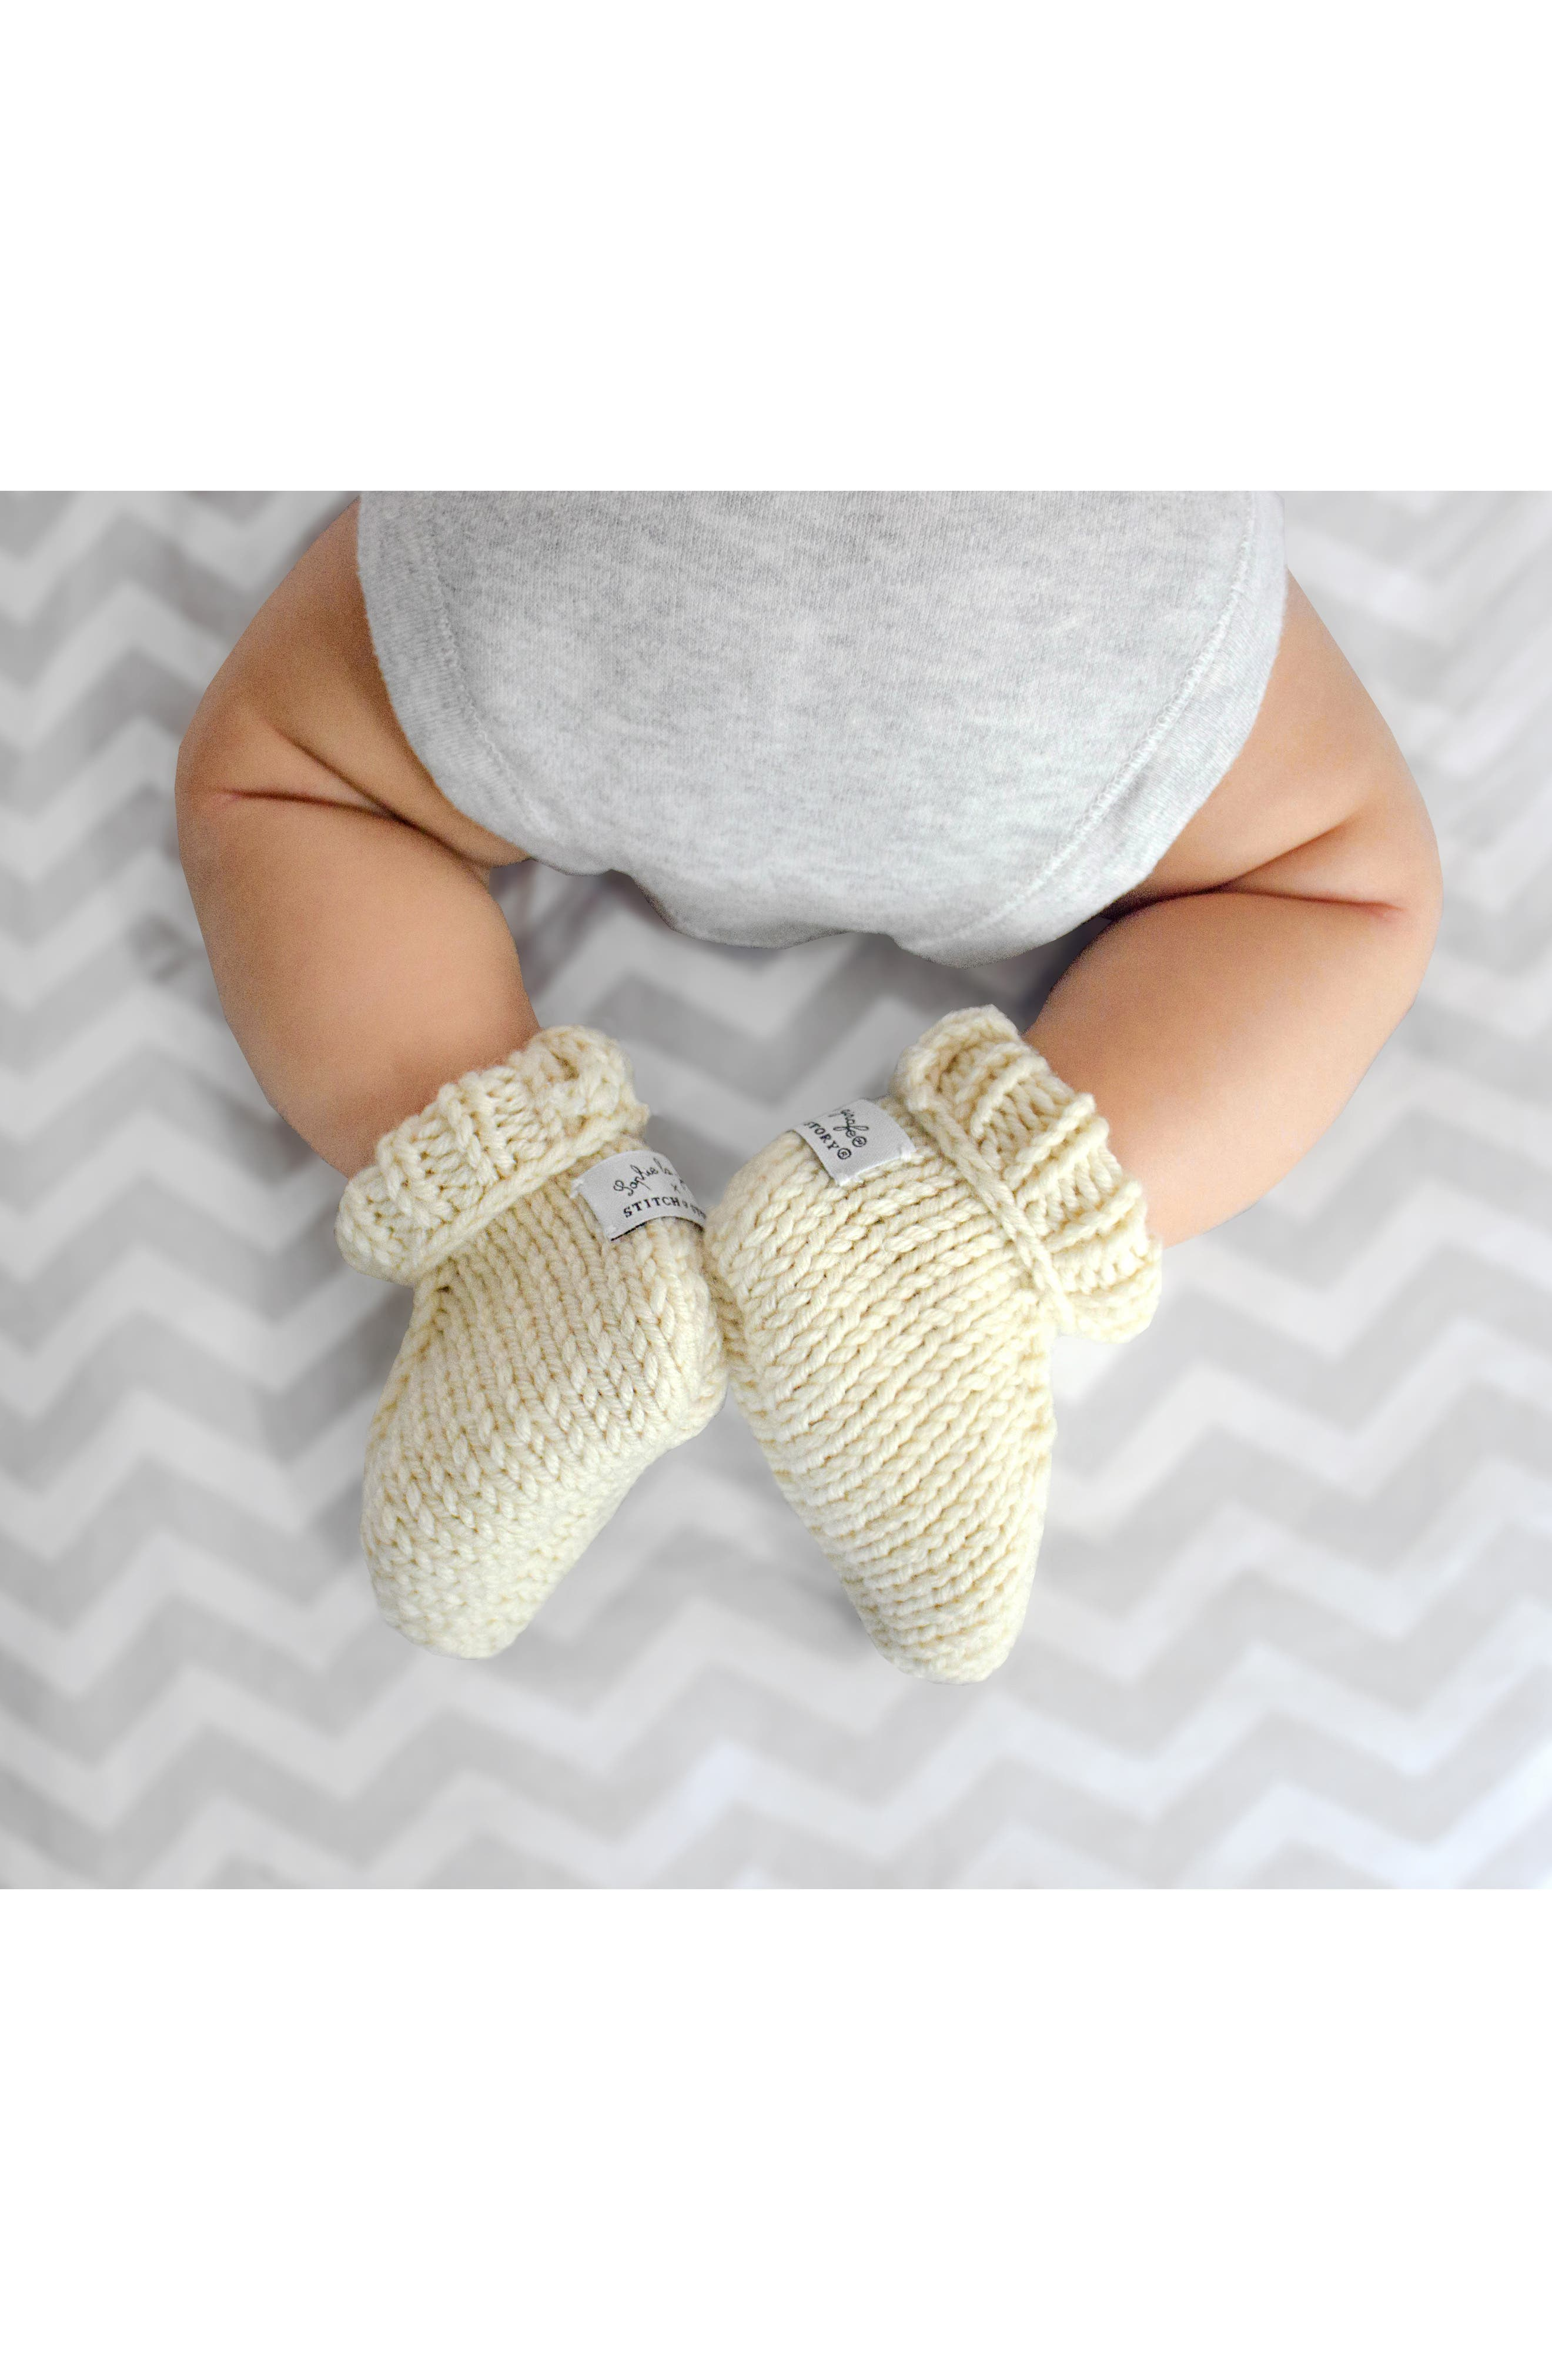 Lily Bow & Booties Knitting Kit,                             Alternate thumbnail 3, color,                             PINK/ IVORY